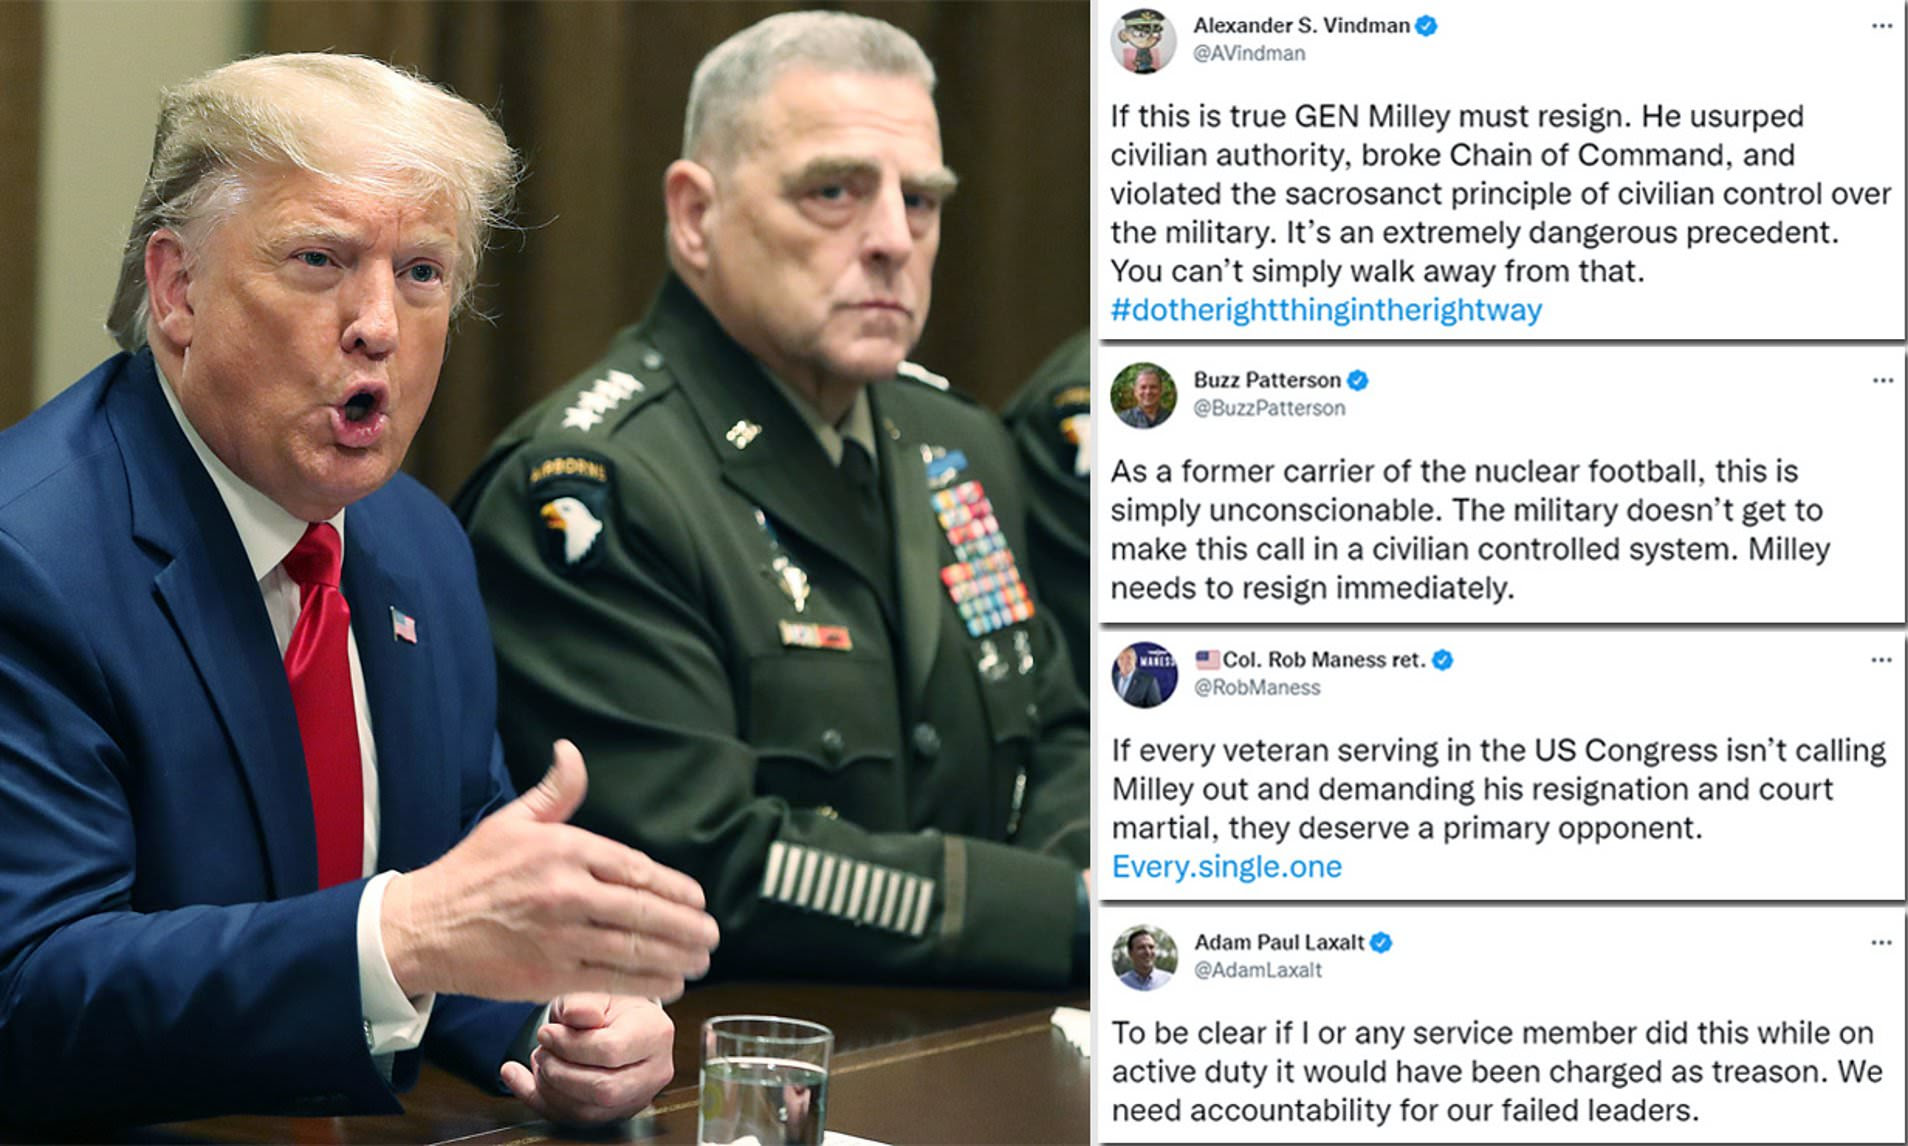 'You can't walk away from that': Alexander Vindman leads ex-military calls for Gen. Milley to resign